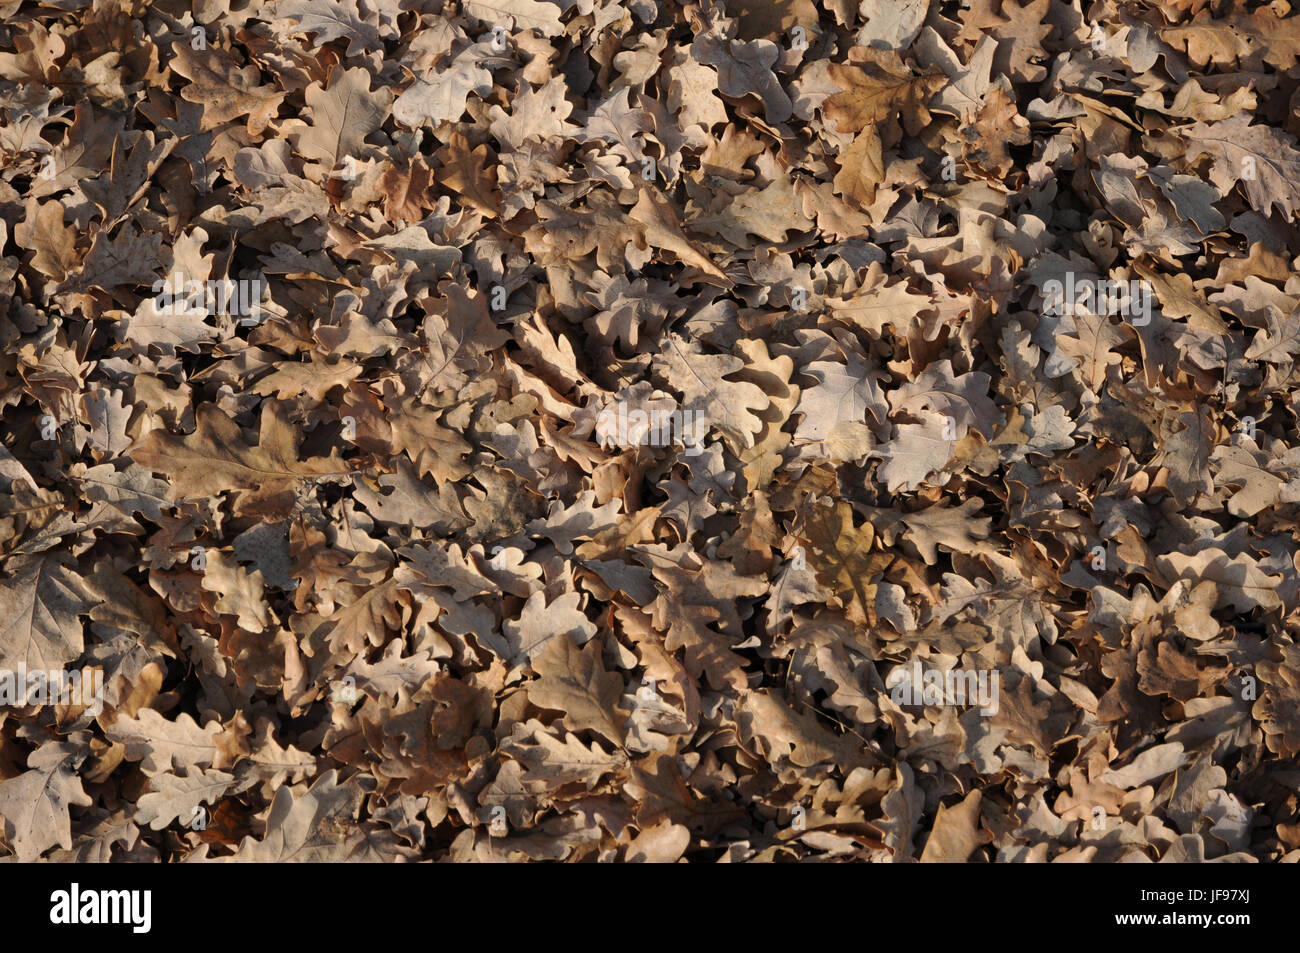 Quercus robur, German oak, autumn leaves Stock Photo